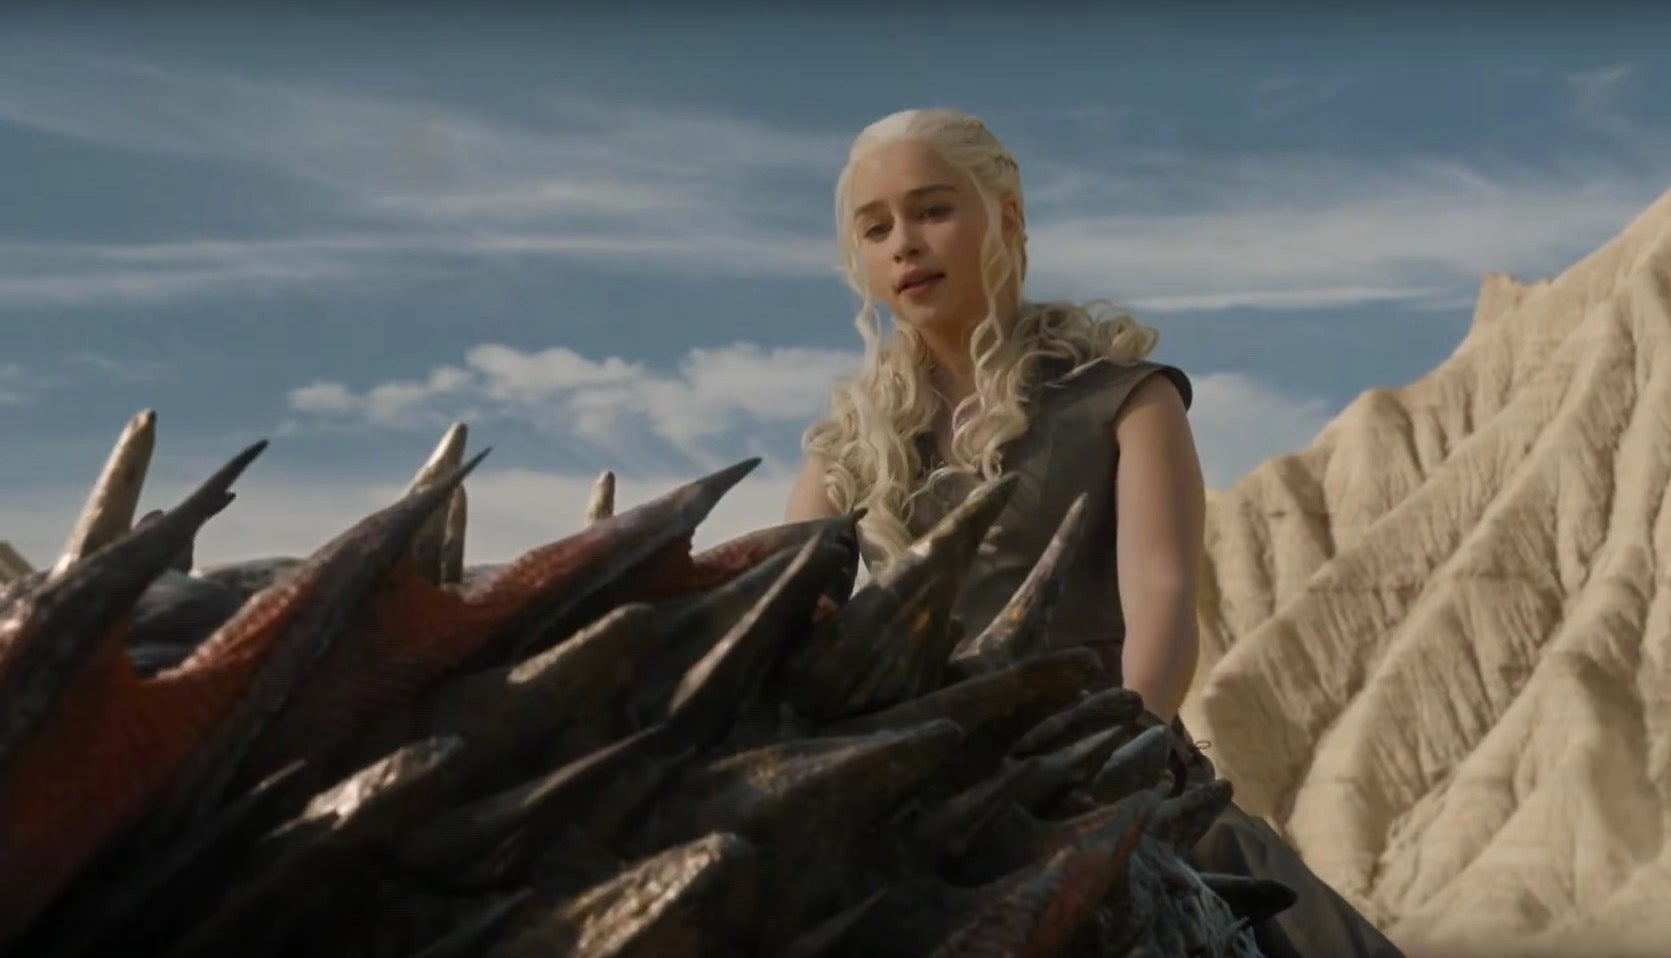 Target Wwe Toys : Game of thrones season director says we should be